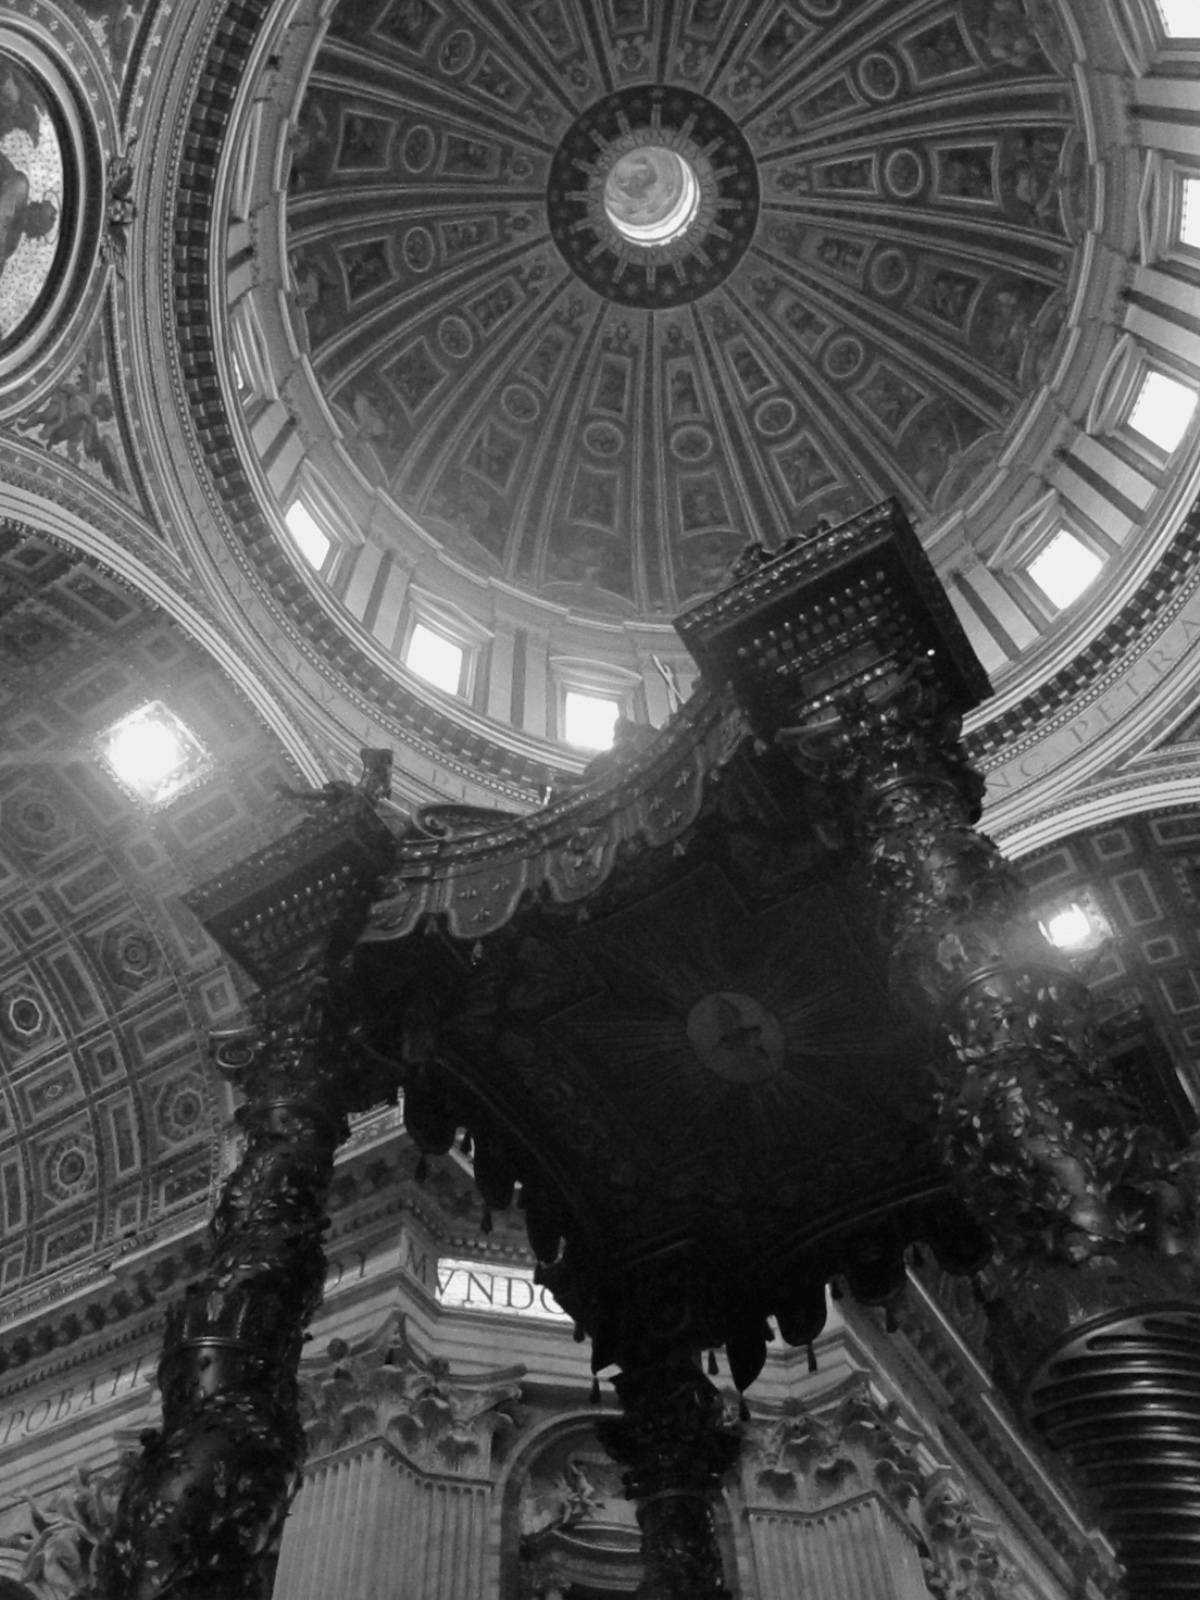 The inside and dome of St Peter's Basilica, rome